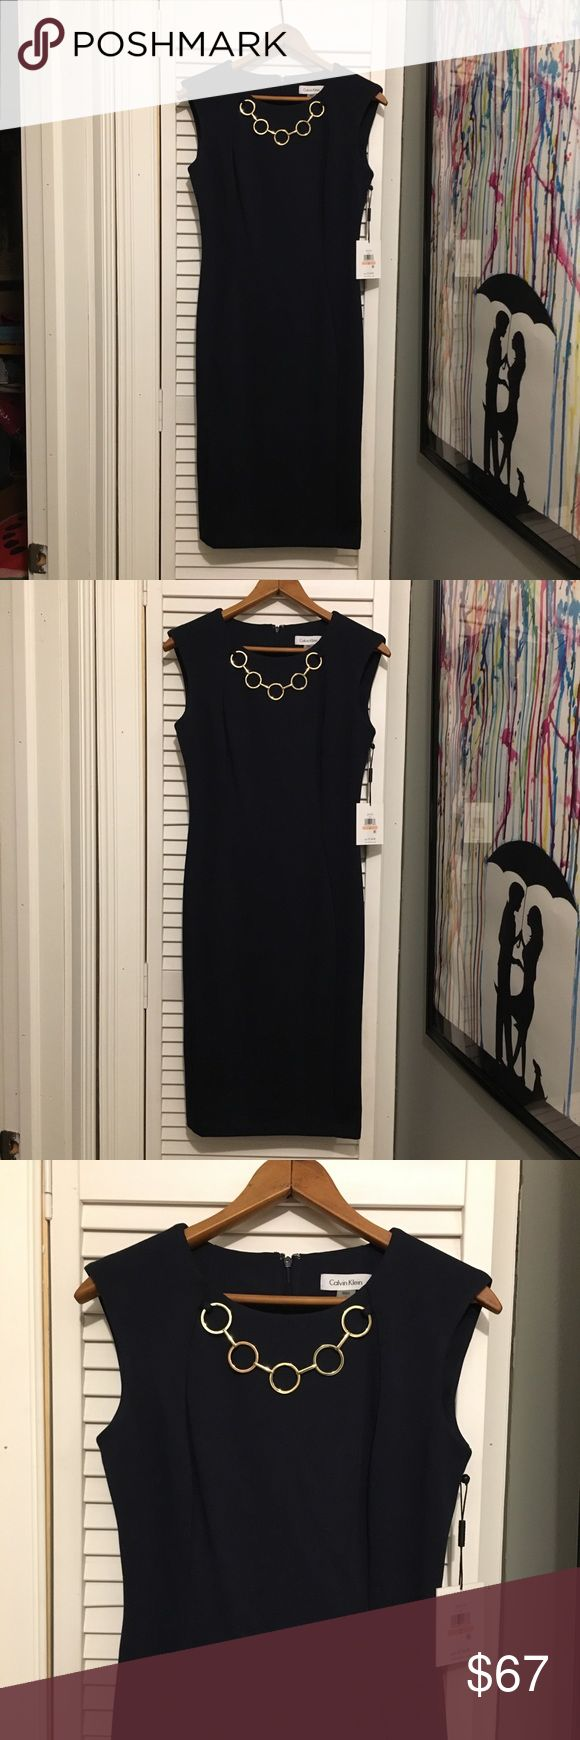 Calvin Klein Sheath Dress Navy, fitted, gold chain sewn in necklace detail. Work or special occasion dress. Zipper in back. Calvin Klein dresses Dresses